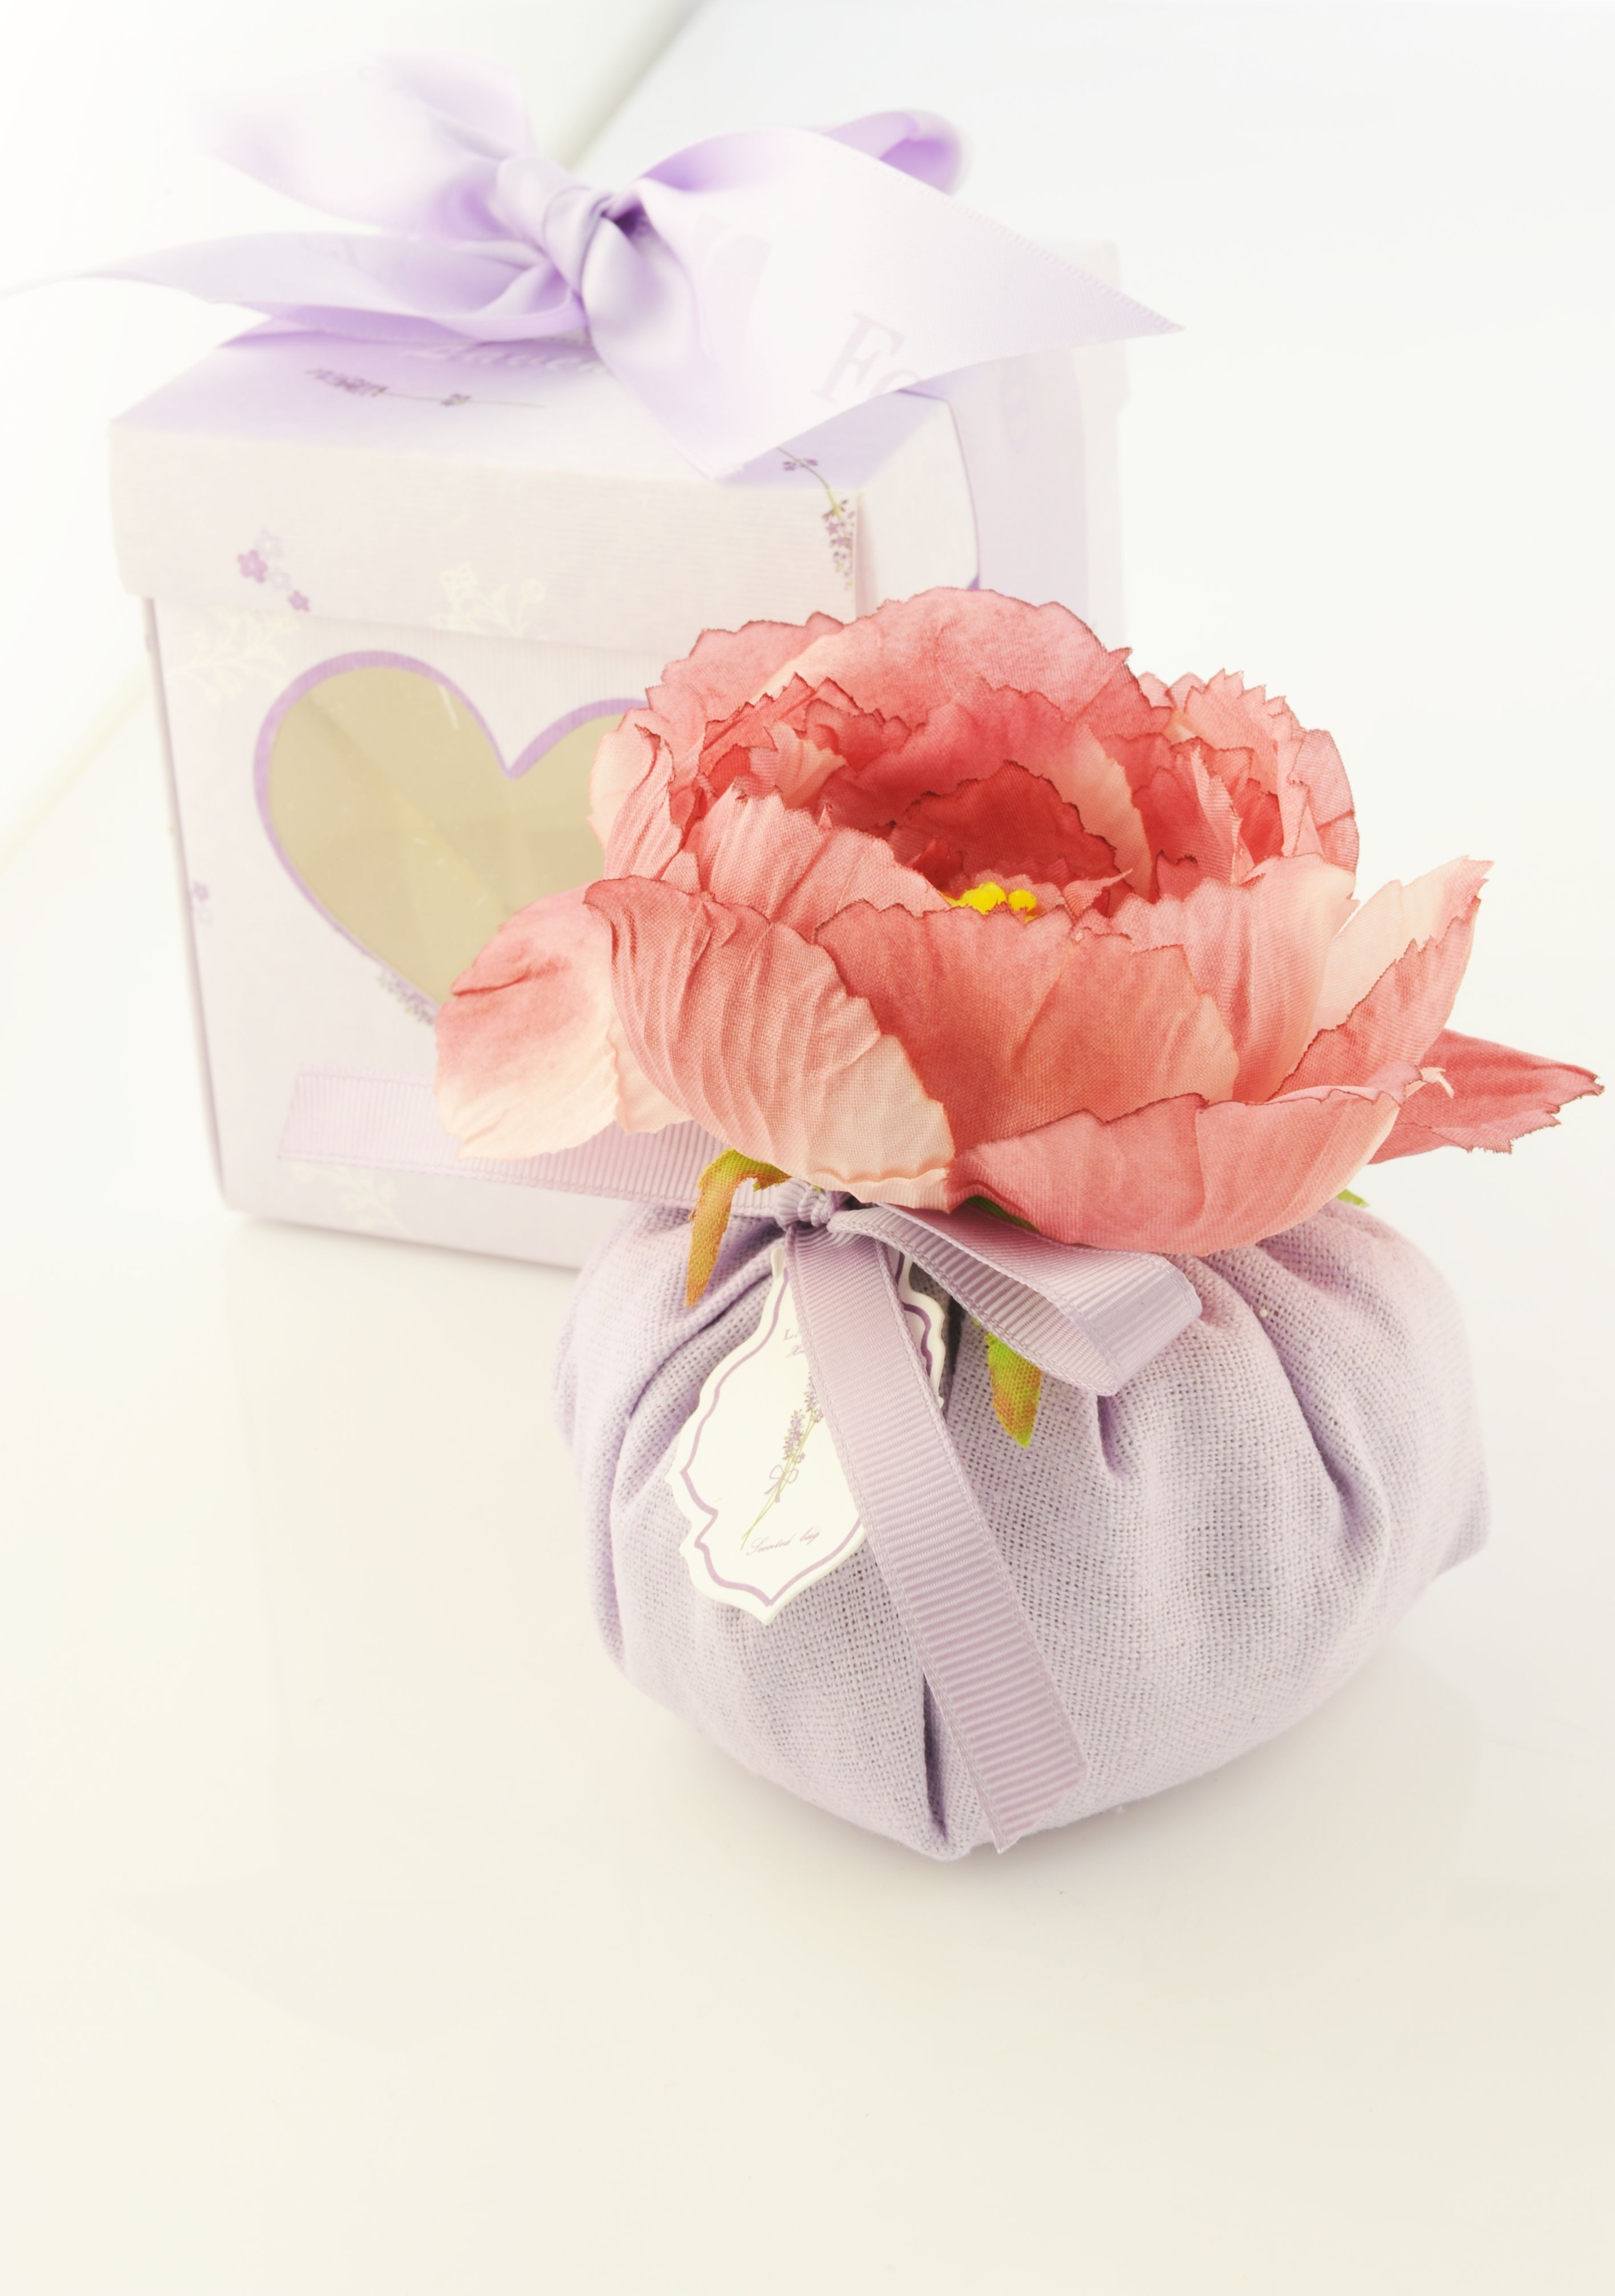 Valentines Day Gift Bag   Gourmet Food Gifts   Harry & David